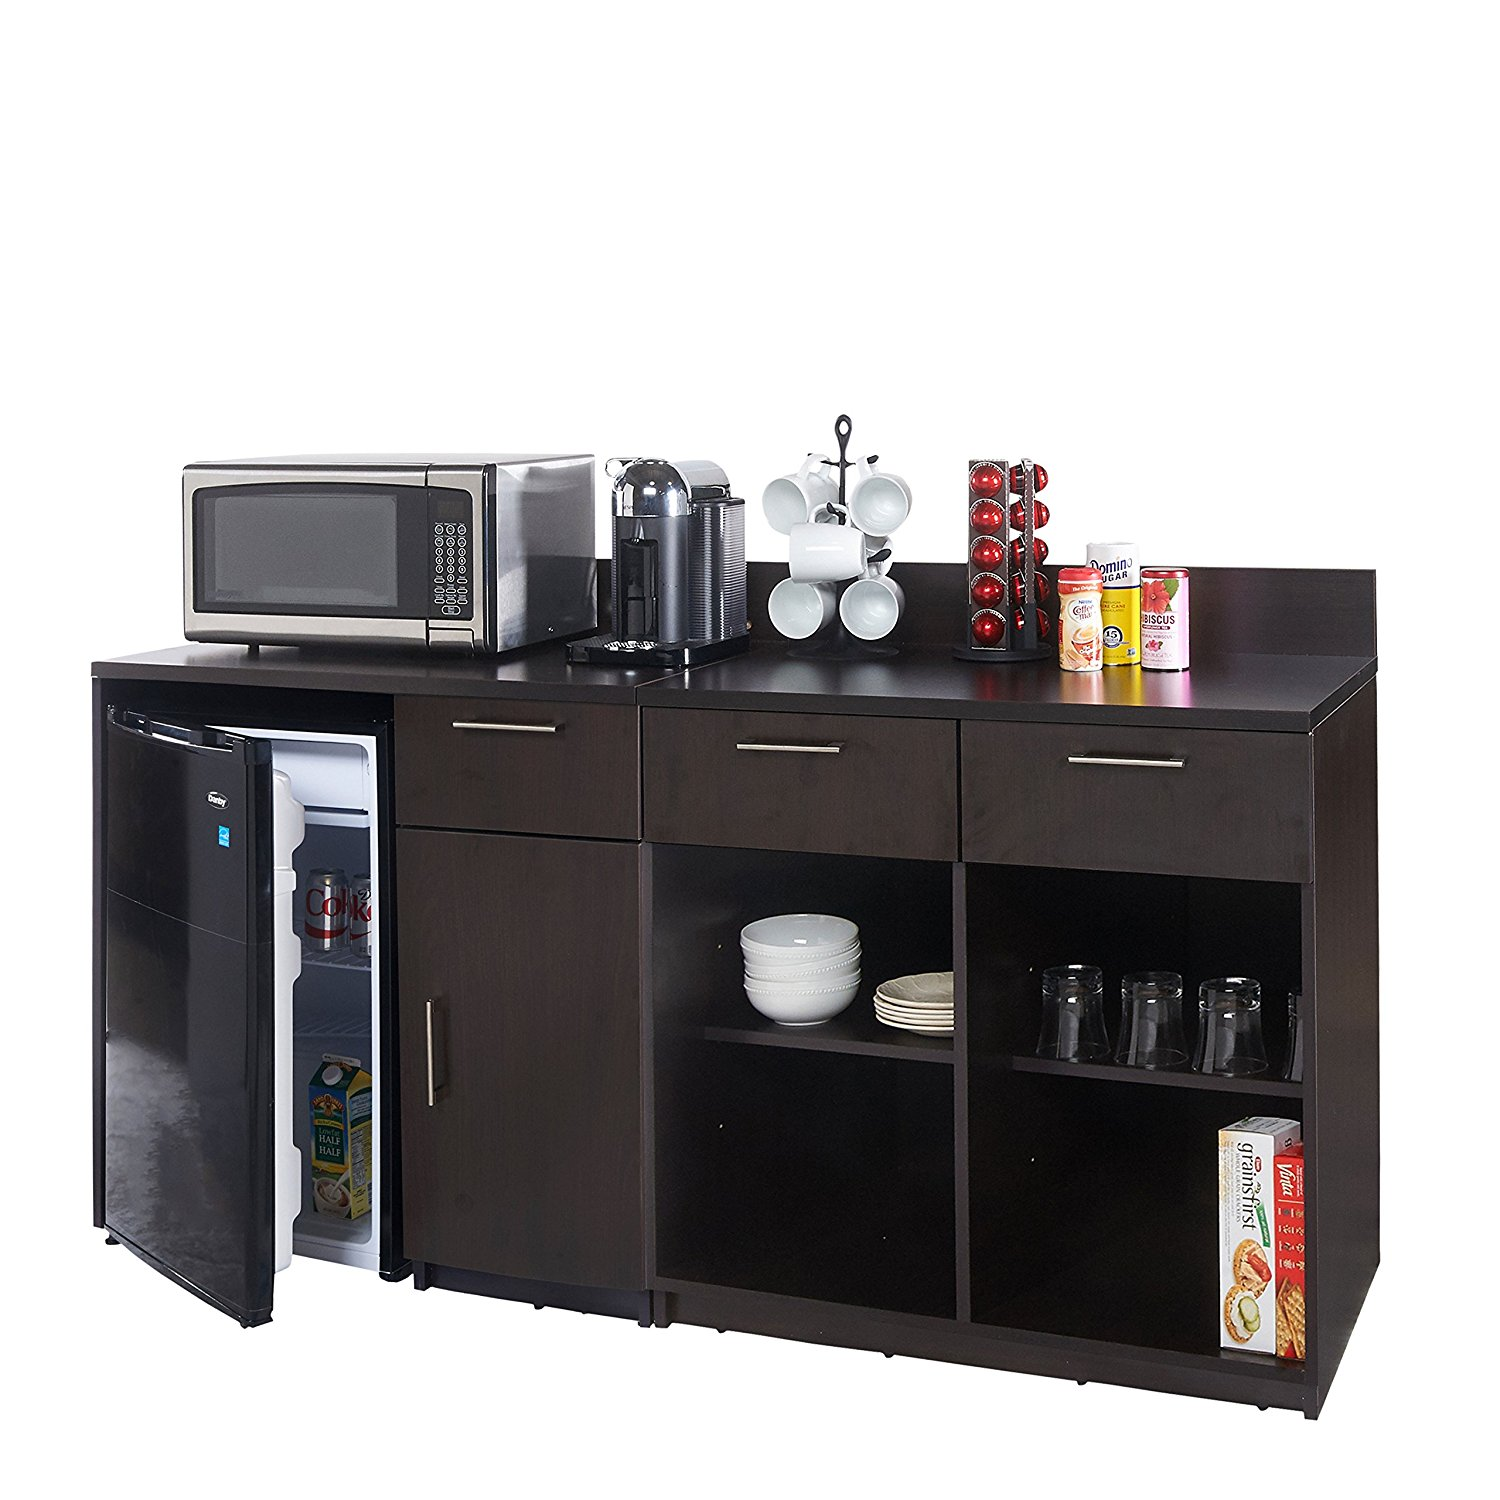 Breaktime 2 Piece 3269 Coffee Kitchen Lunch Break Room Furniture Cabinets Fully Assembled Ready to Use, Instantly Create your New Break Room, Espresso